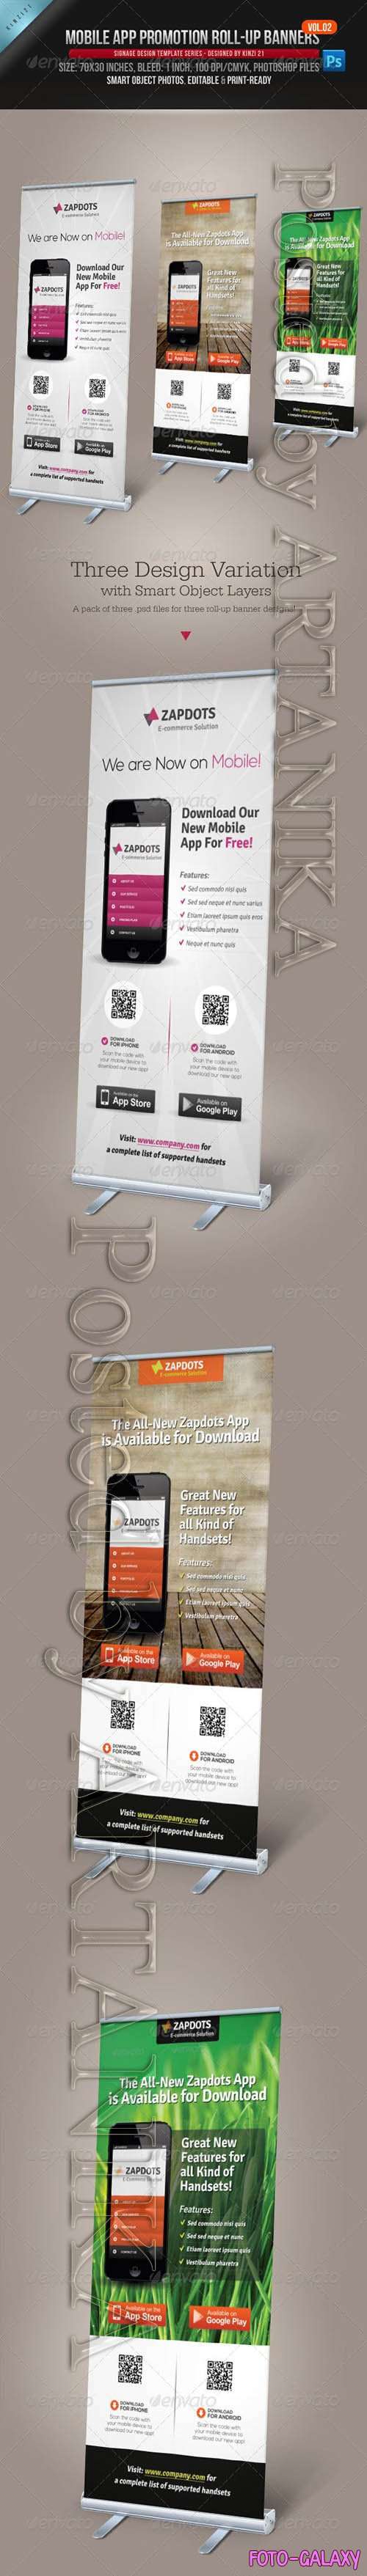 GraphicRiver - Mobile App Promotion Roll-up Banners Vol.02 4689886